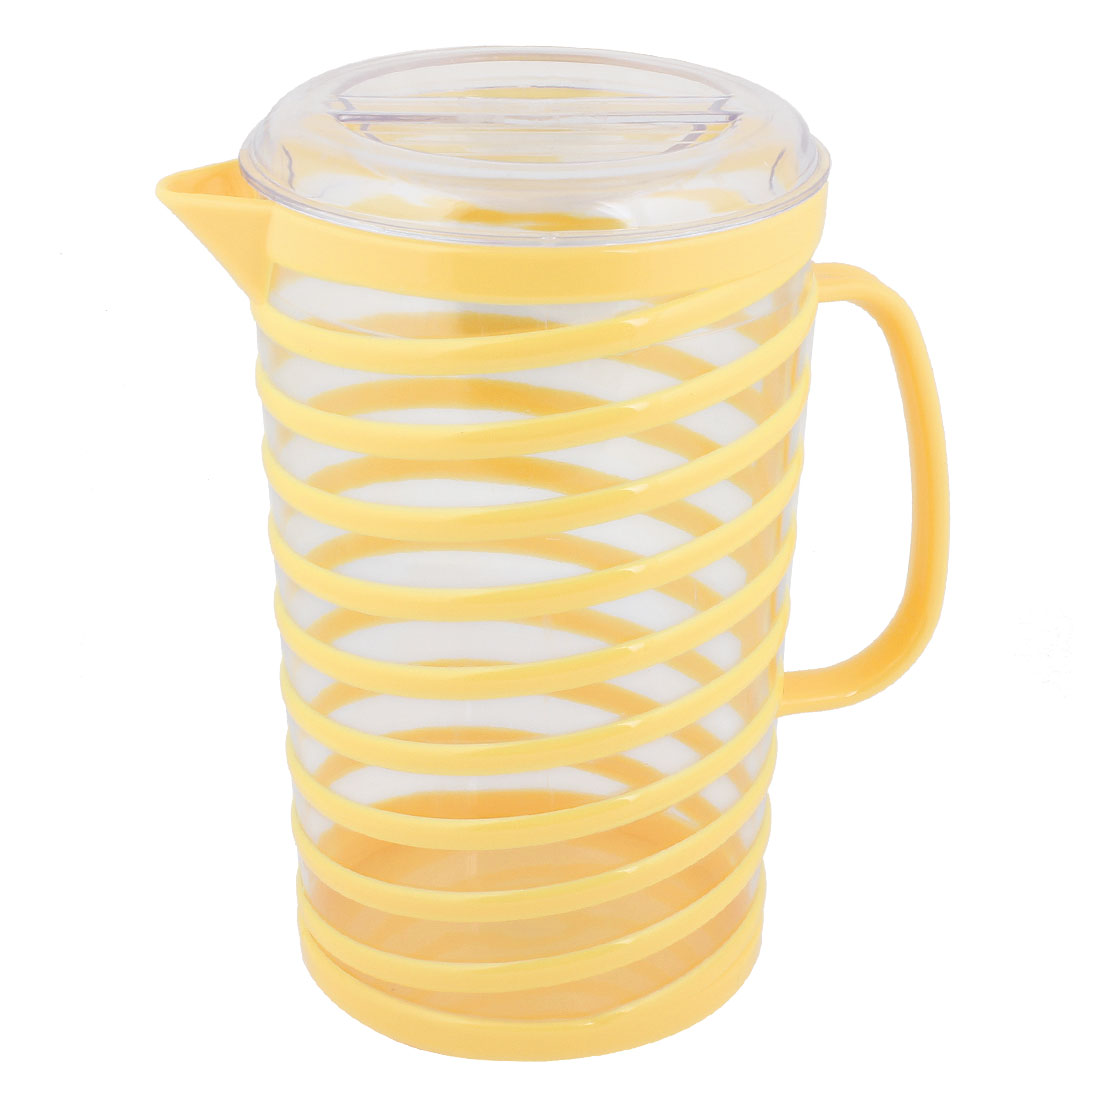 Home 1800ml Capacity Nonslip Handle Coolling Cooler Water Pitcher Yellow Clear